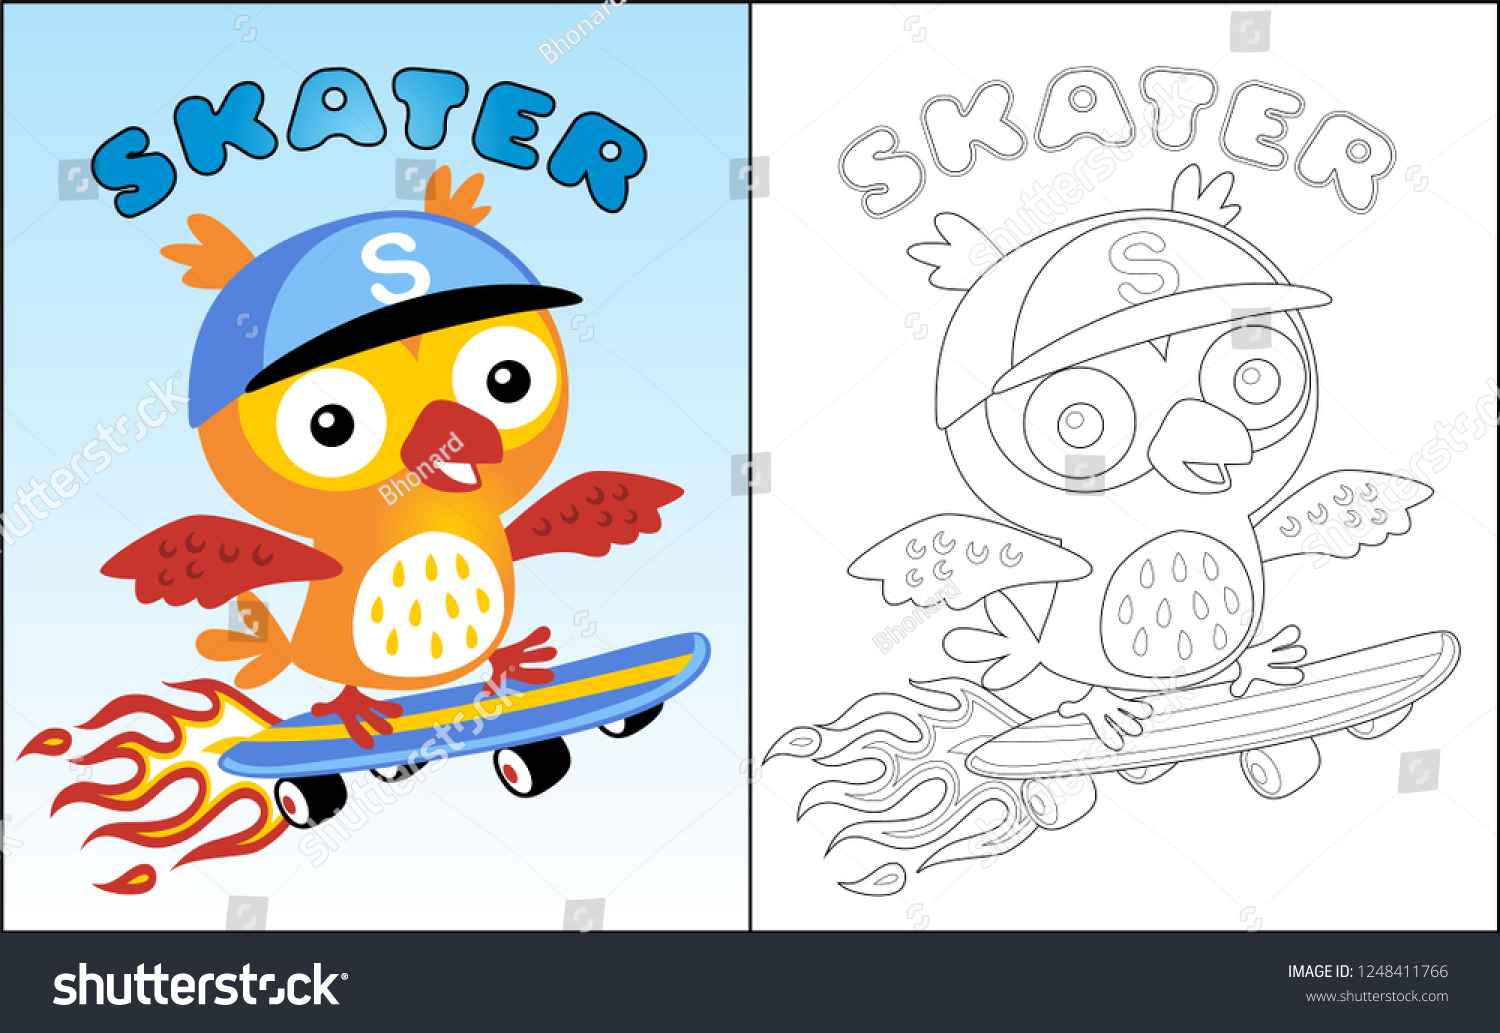 27 Best coloring skateboard images | Coloring pages, Skateboard ... | 1033x1500